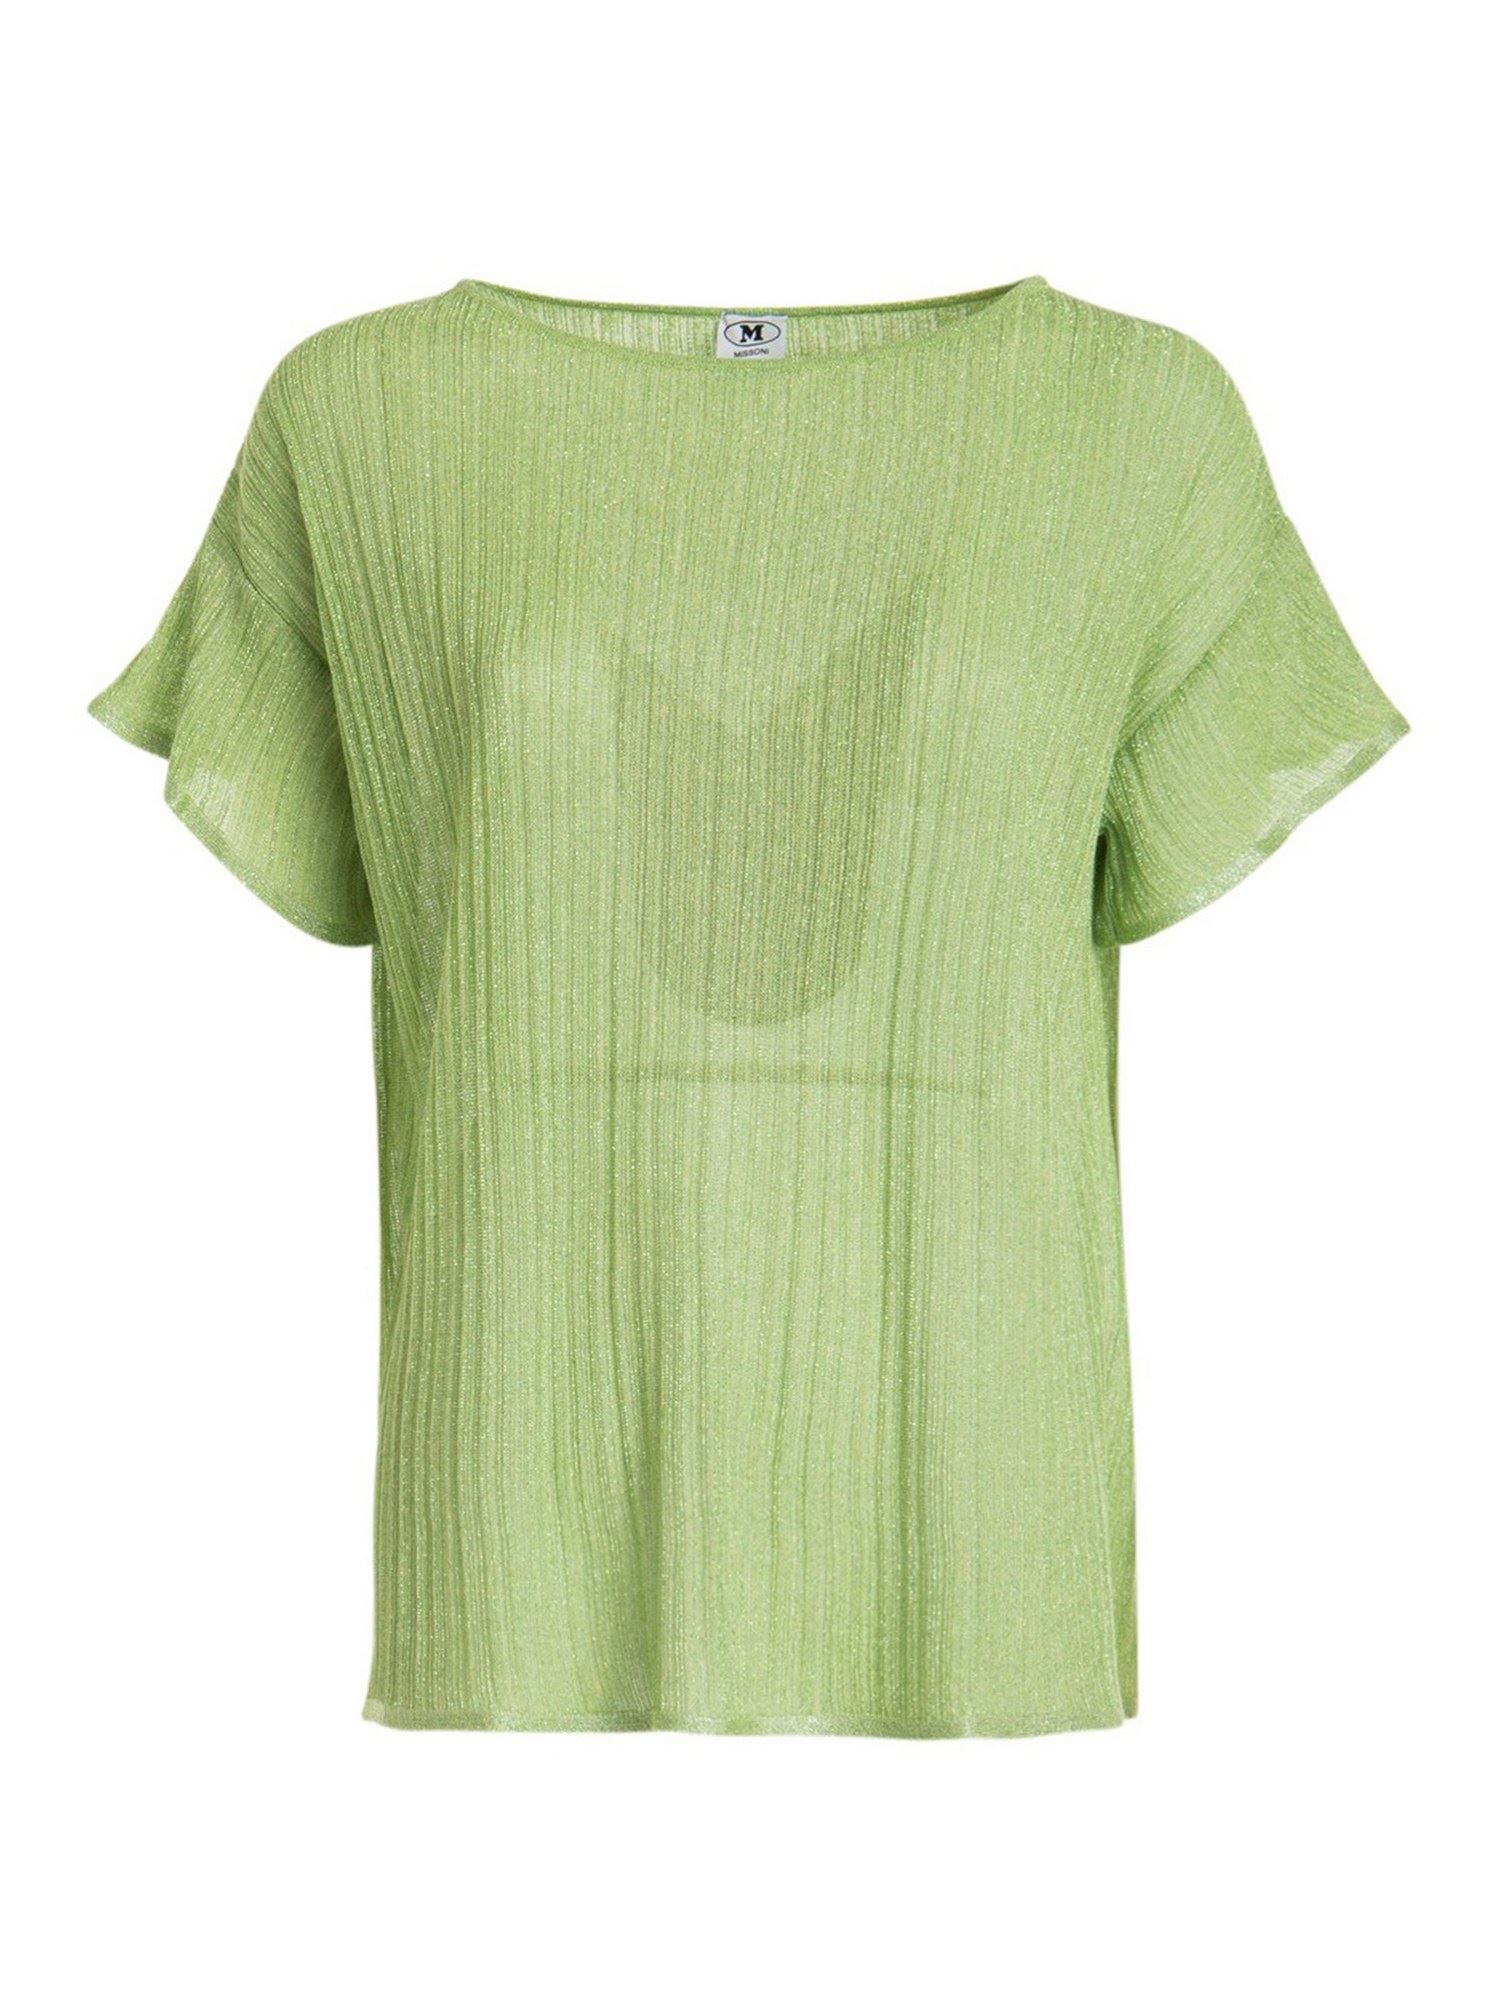 M Missoni RIBBED T-SHIRT IN GREEN